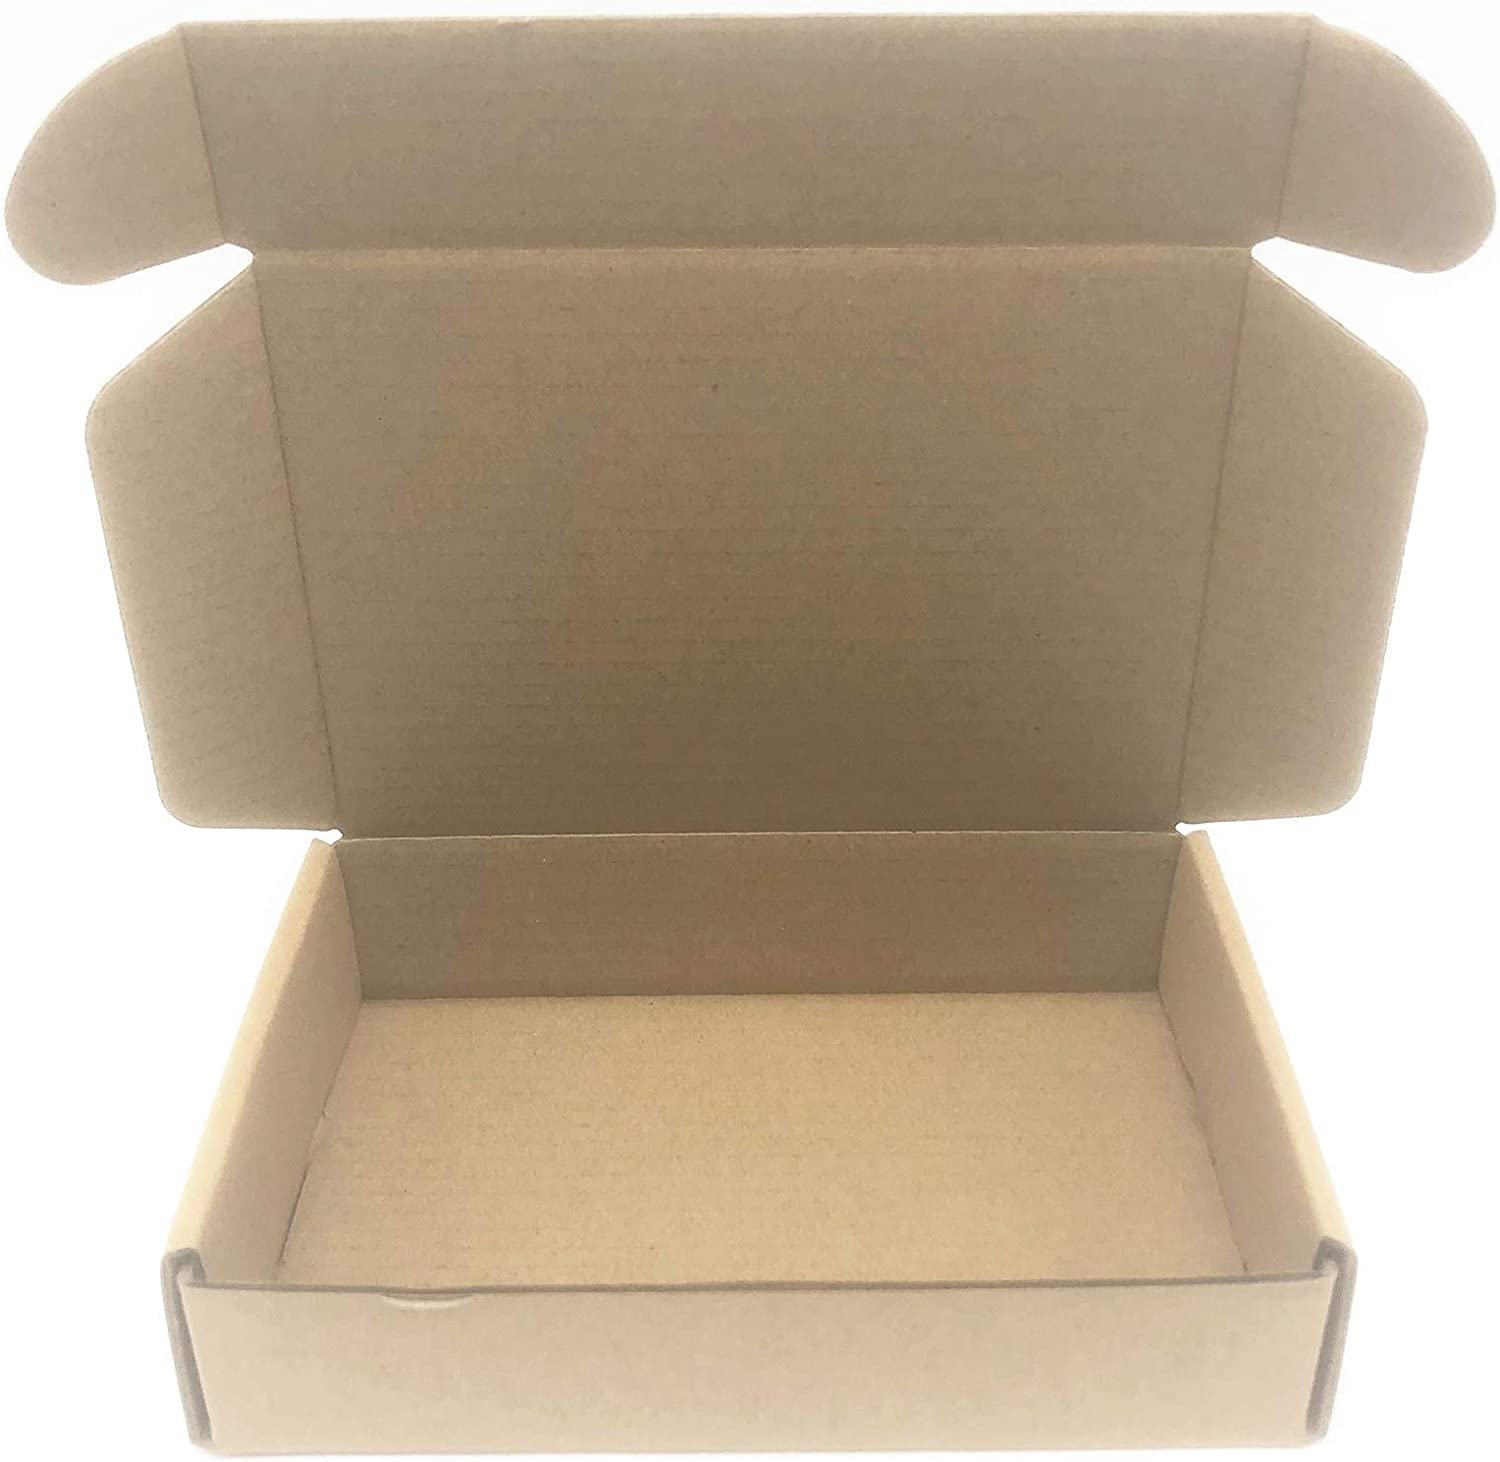 Small Cardboard favorite Shipping Box Mailers 6 Inch 1.3 Corrugated 4 Ranking TOP4 x